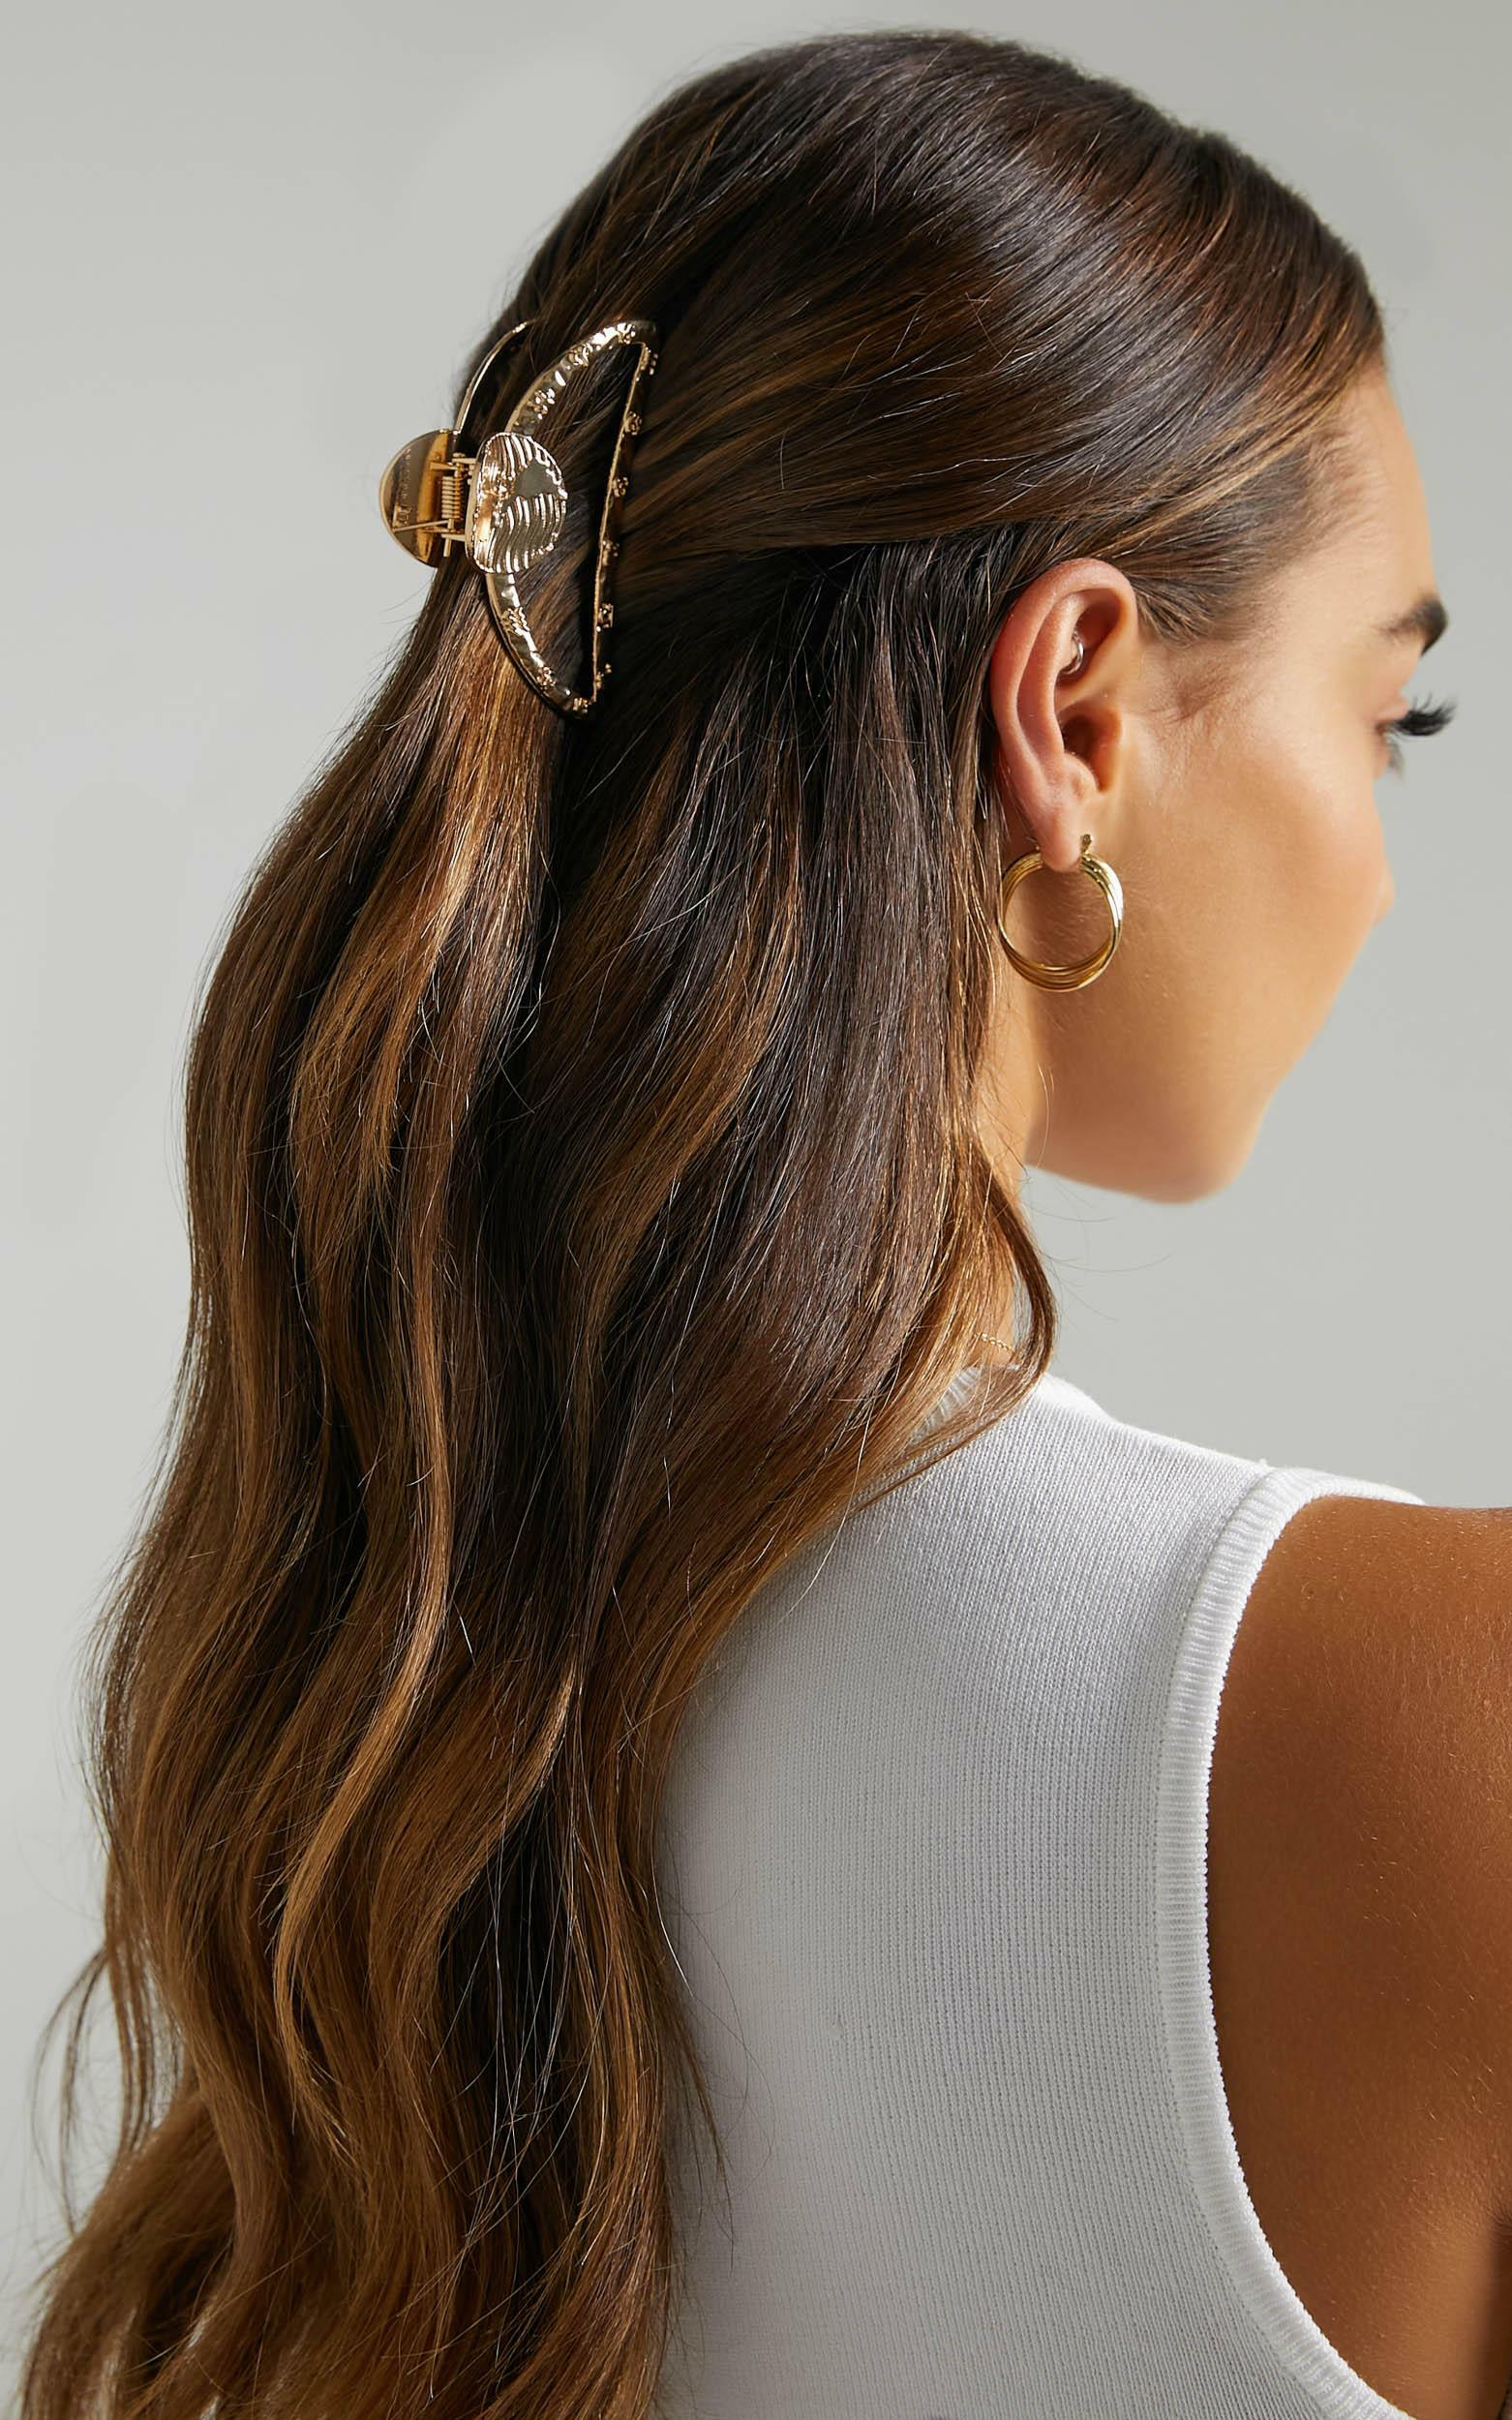 Summer Day Hair Clip in Shiny Gold, , hi-res image number null